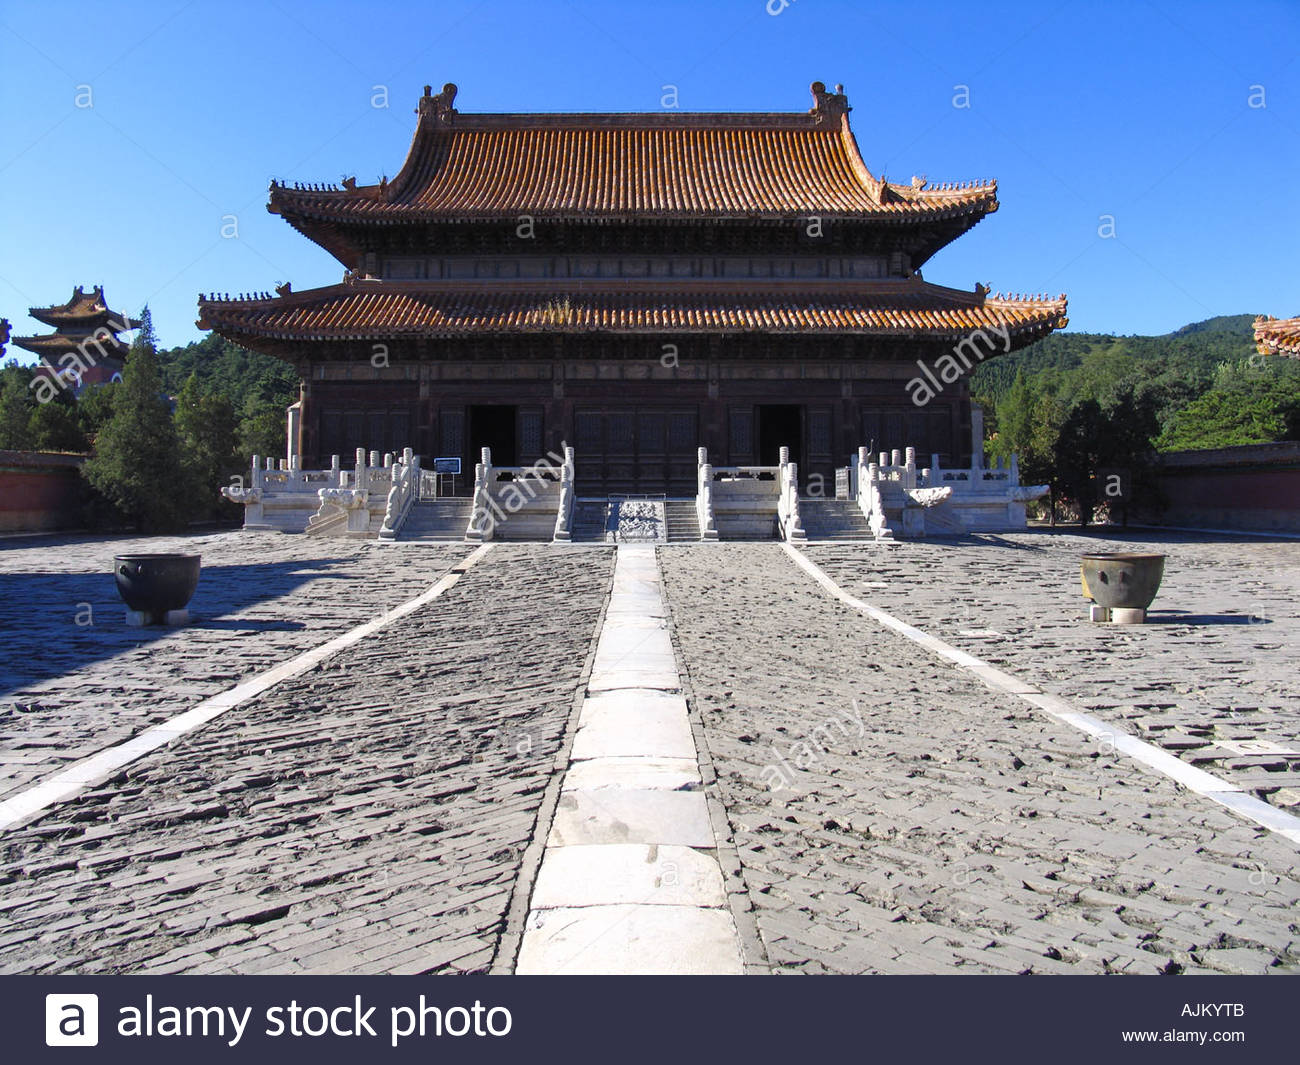 Shǐjiā Hútòng Museum Běijīng, Imperial tombs of Empress Dowager Cixi of Qing Dynasity in the ...